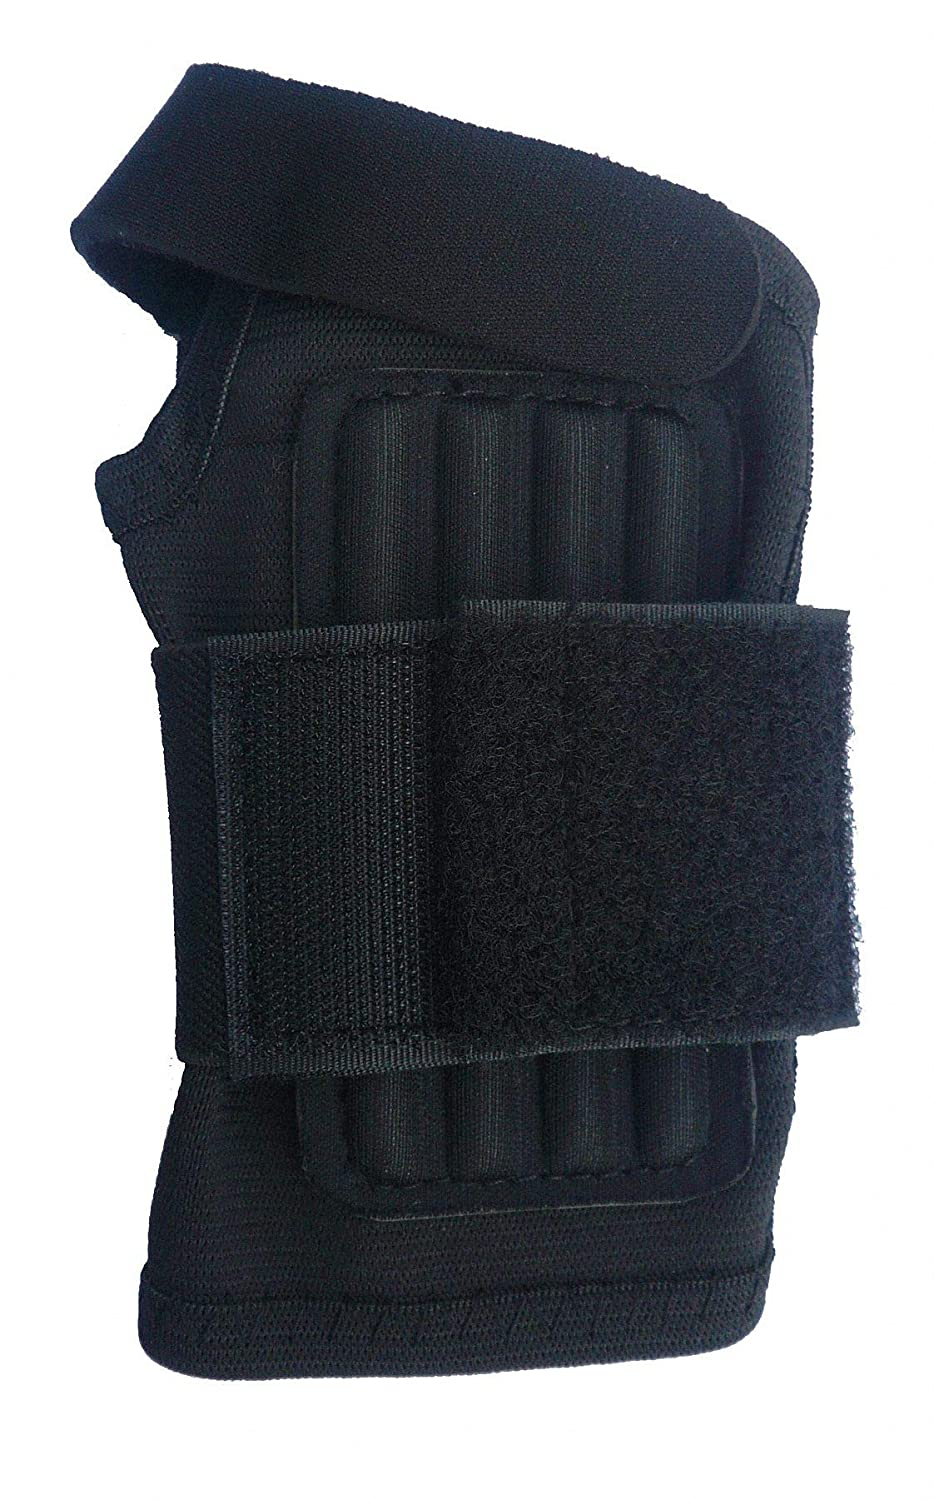 Wrist Support Ambidextrous Black Condor 3RXT7 S